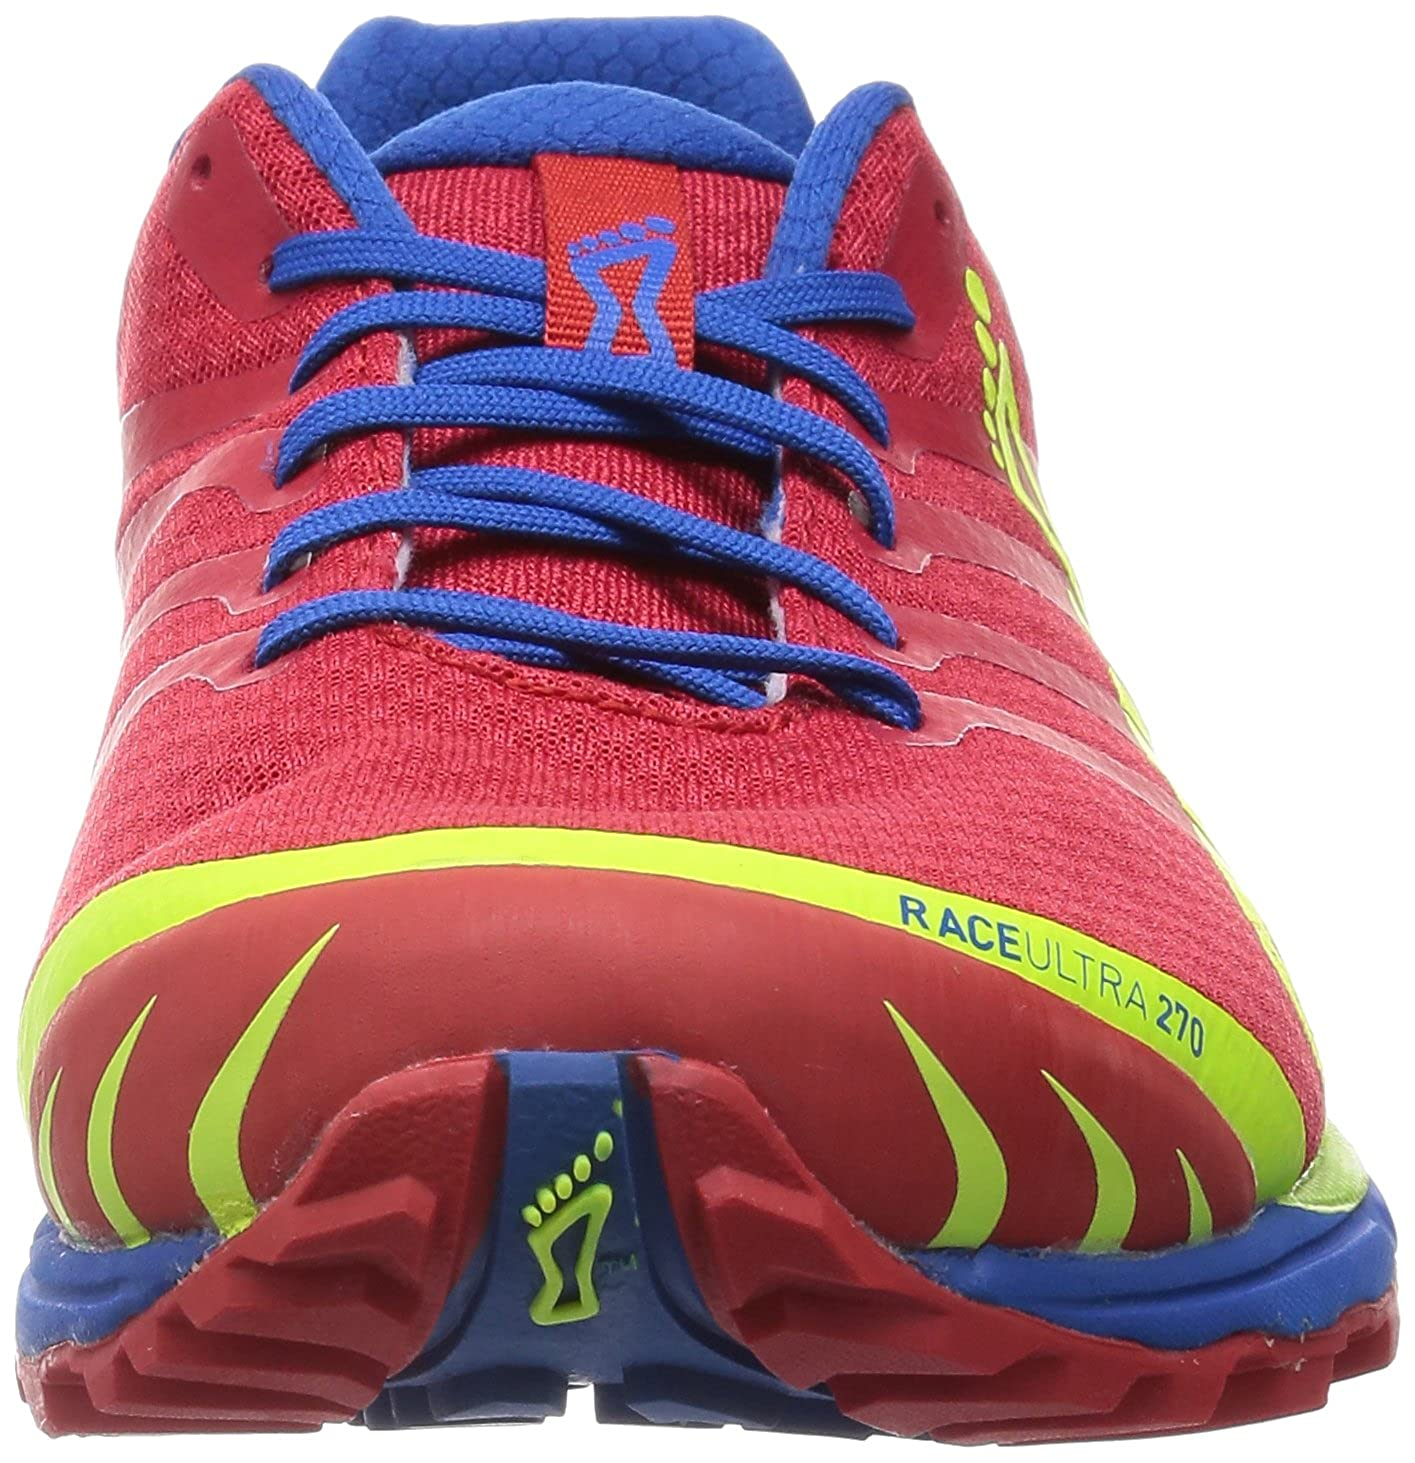 Inov-8 Men s Race Ultra 270 Trail Running Shoe